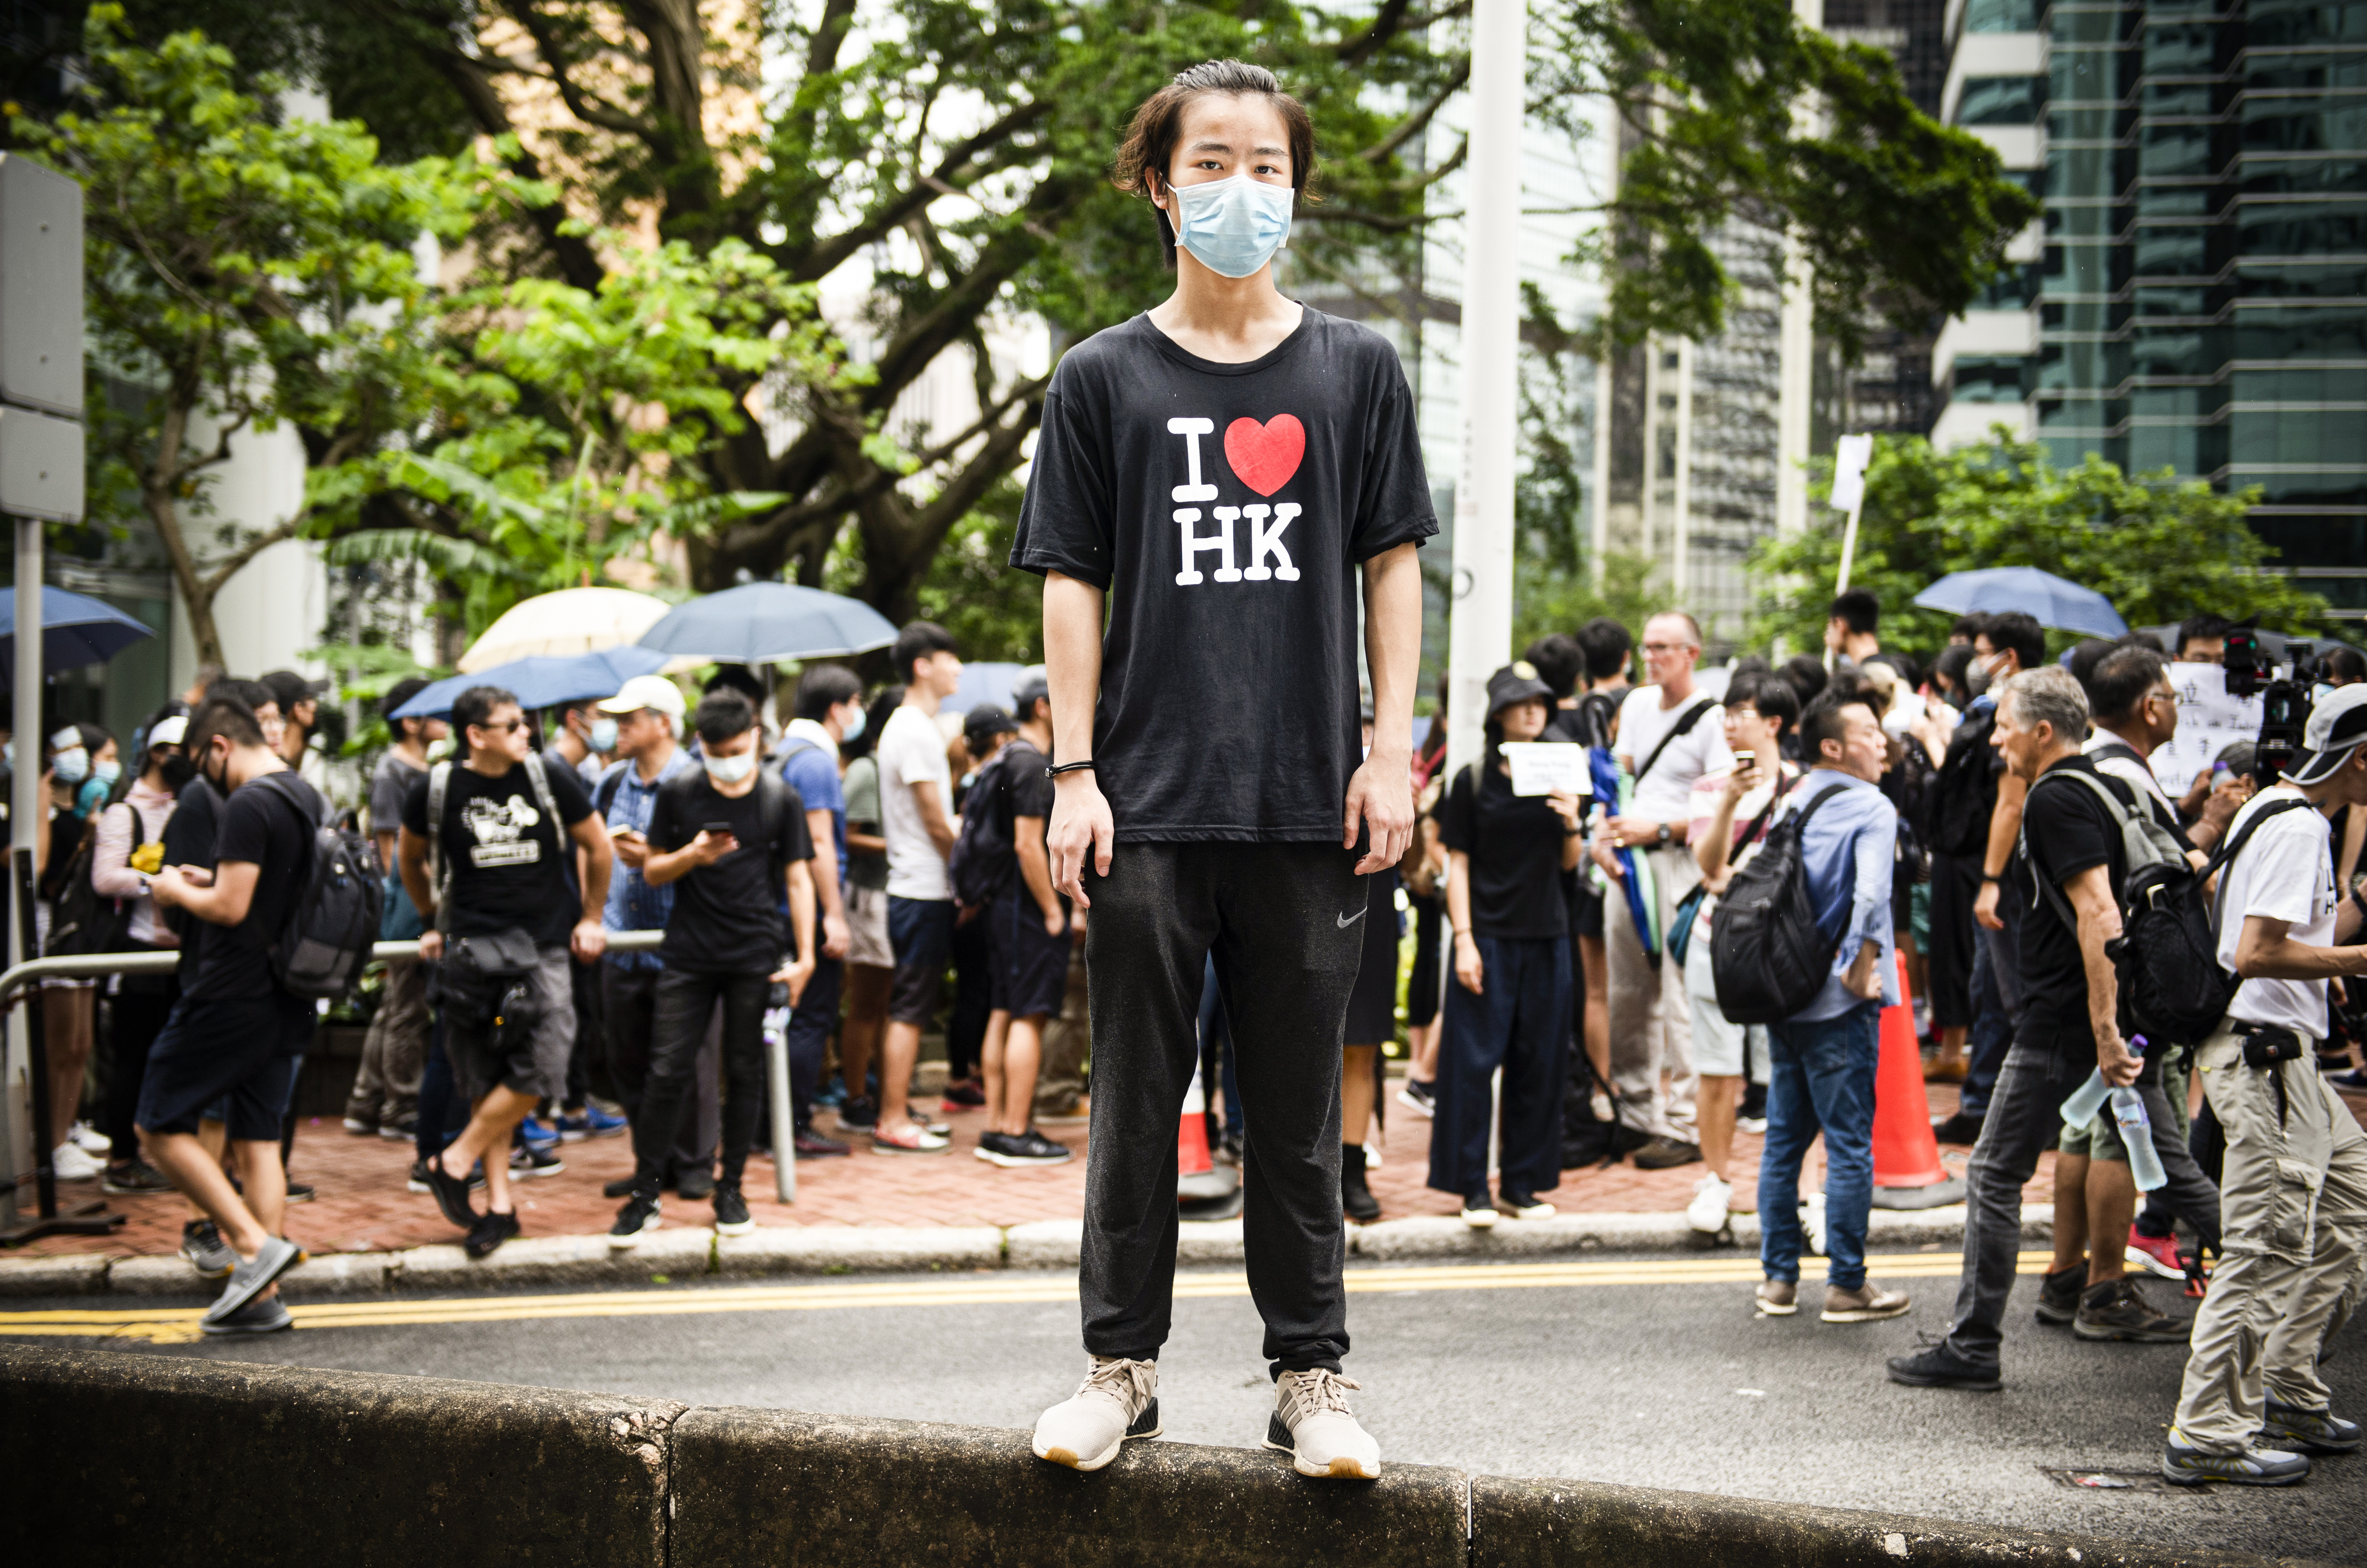 Hong Kong protests: 9 questions you were too embarrassed to